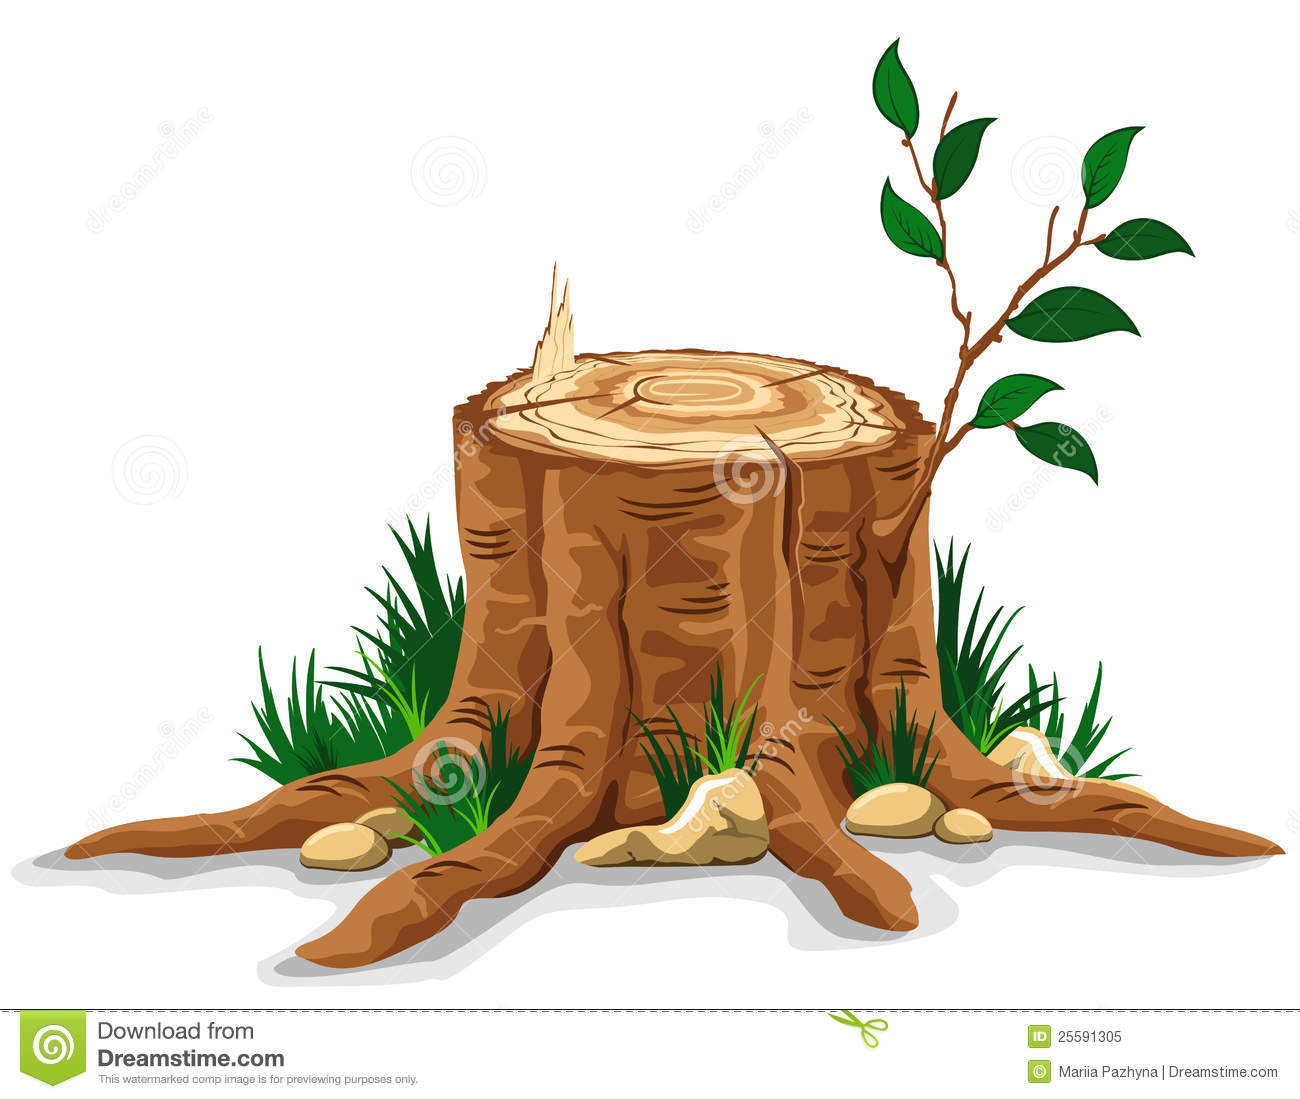 Young Branch On The Old Tree Stump  Detailed Vector Illustration